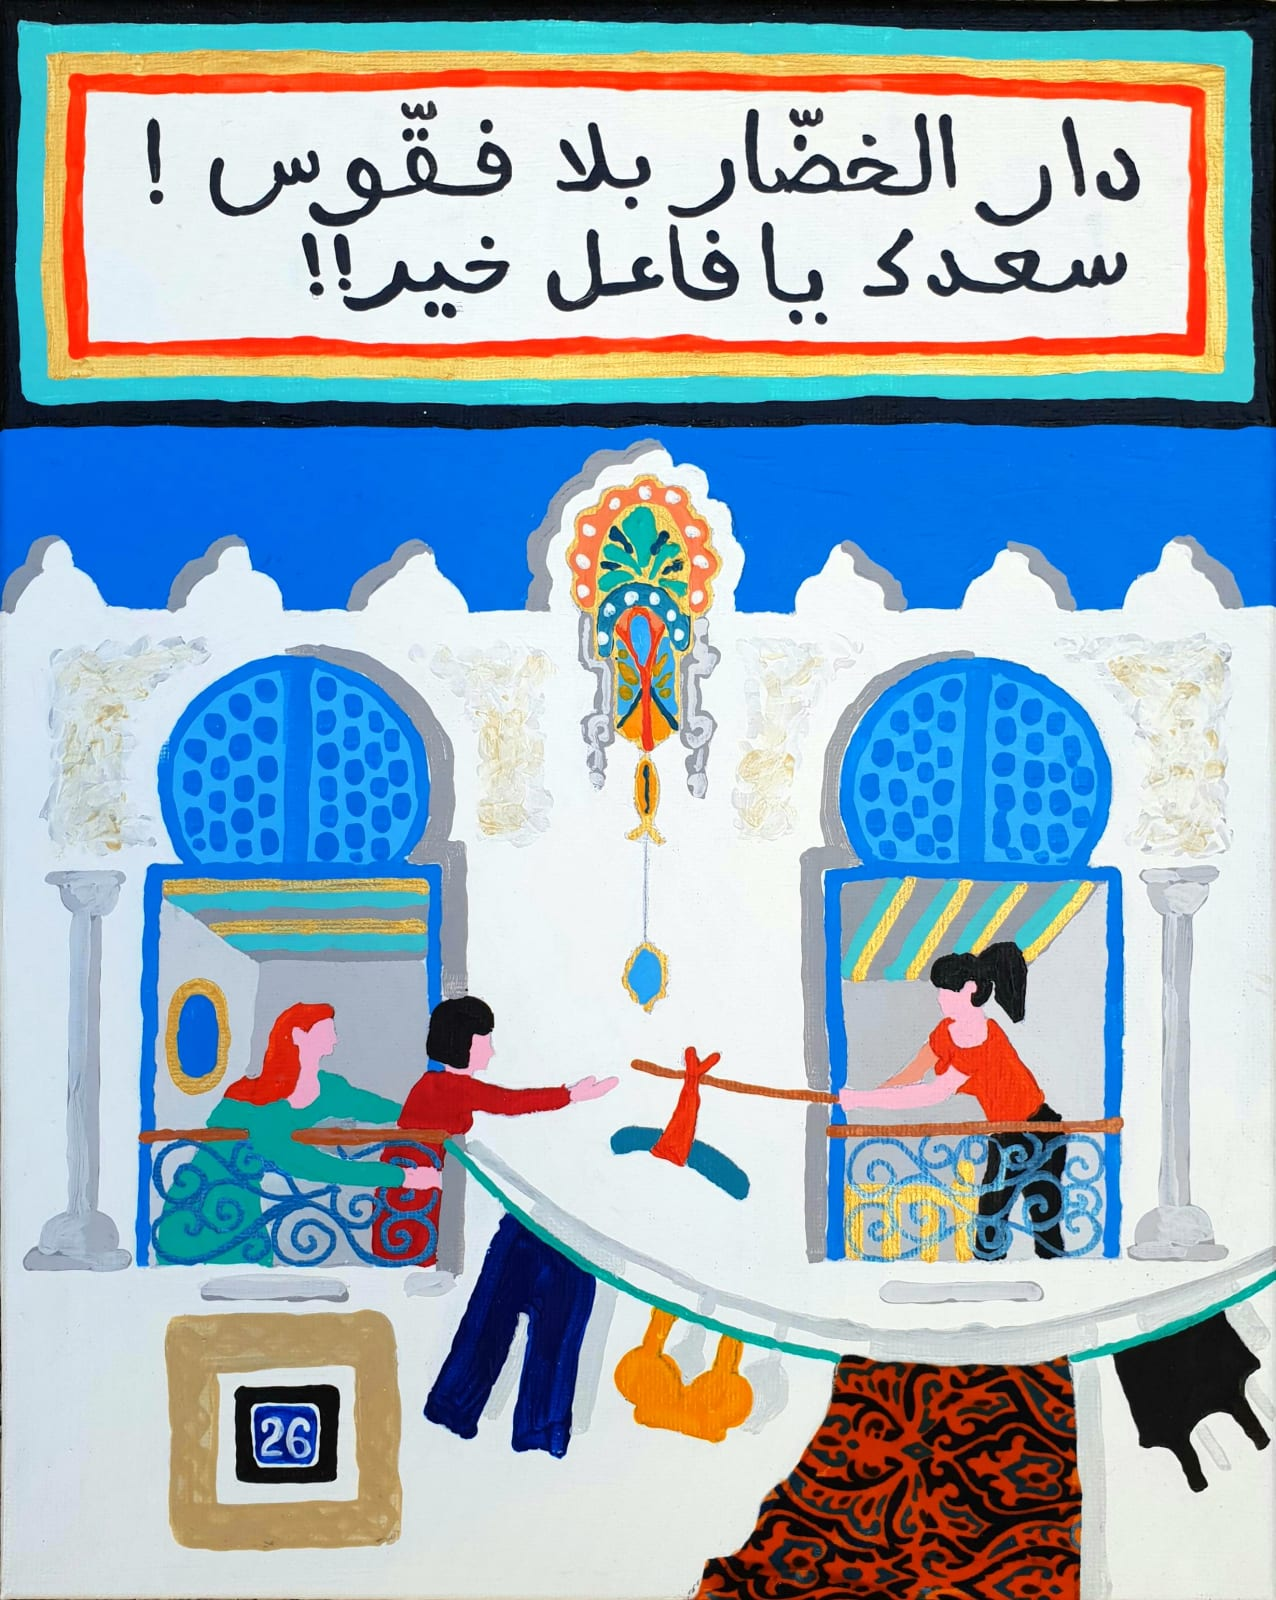 Ilyes Messaoudi, Night 110, The house of the Green Grocer does not have Cucumber! Blessings to you who do good deeds!, 2020